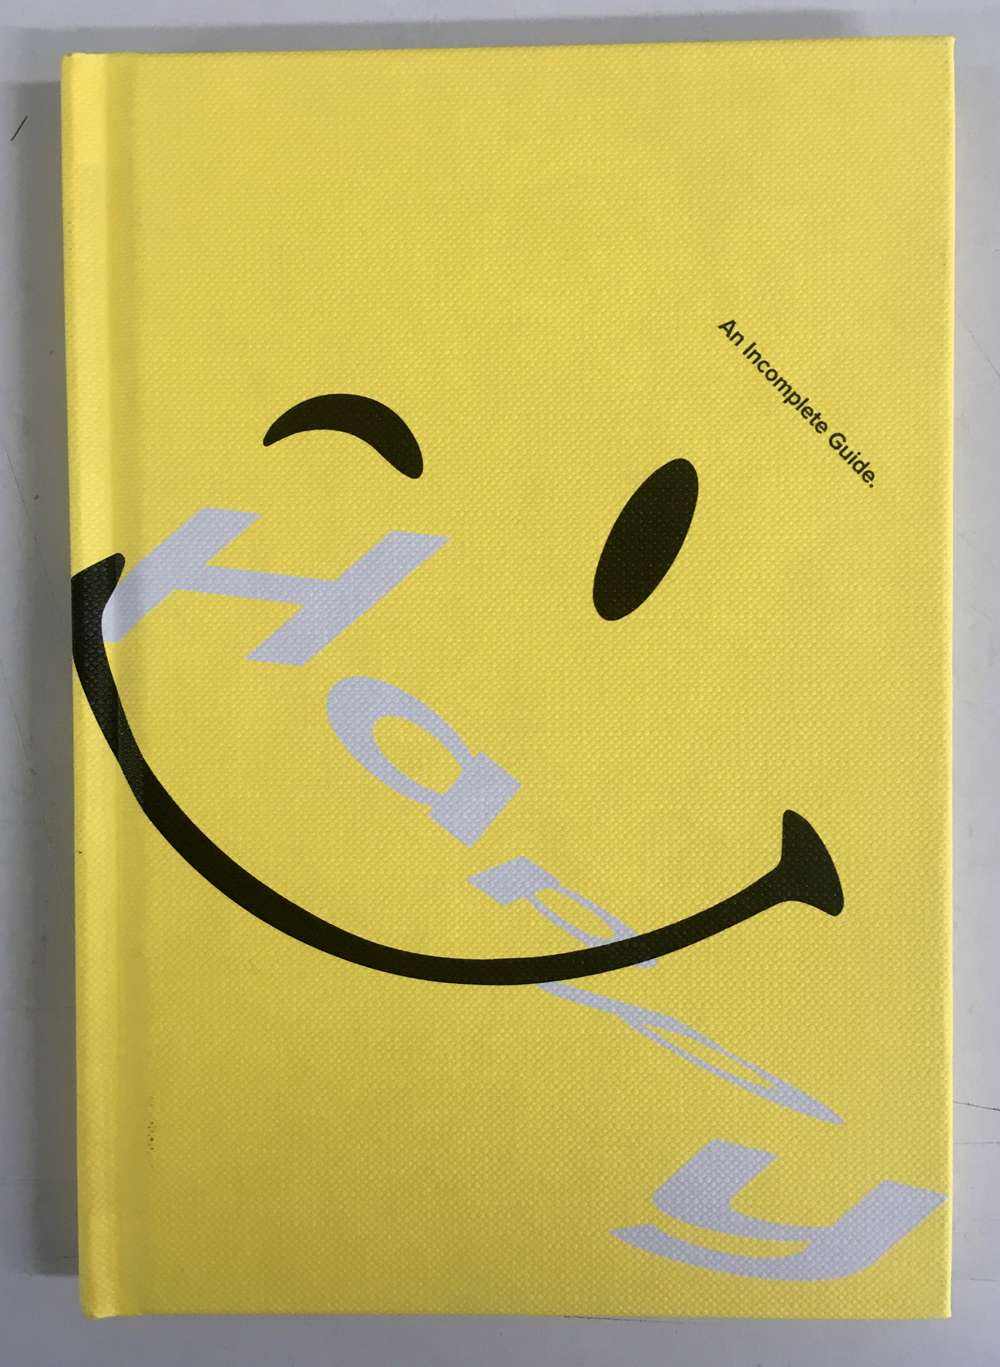 'Happy' publication